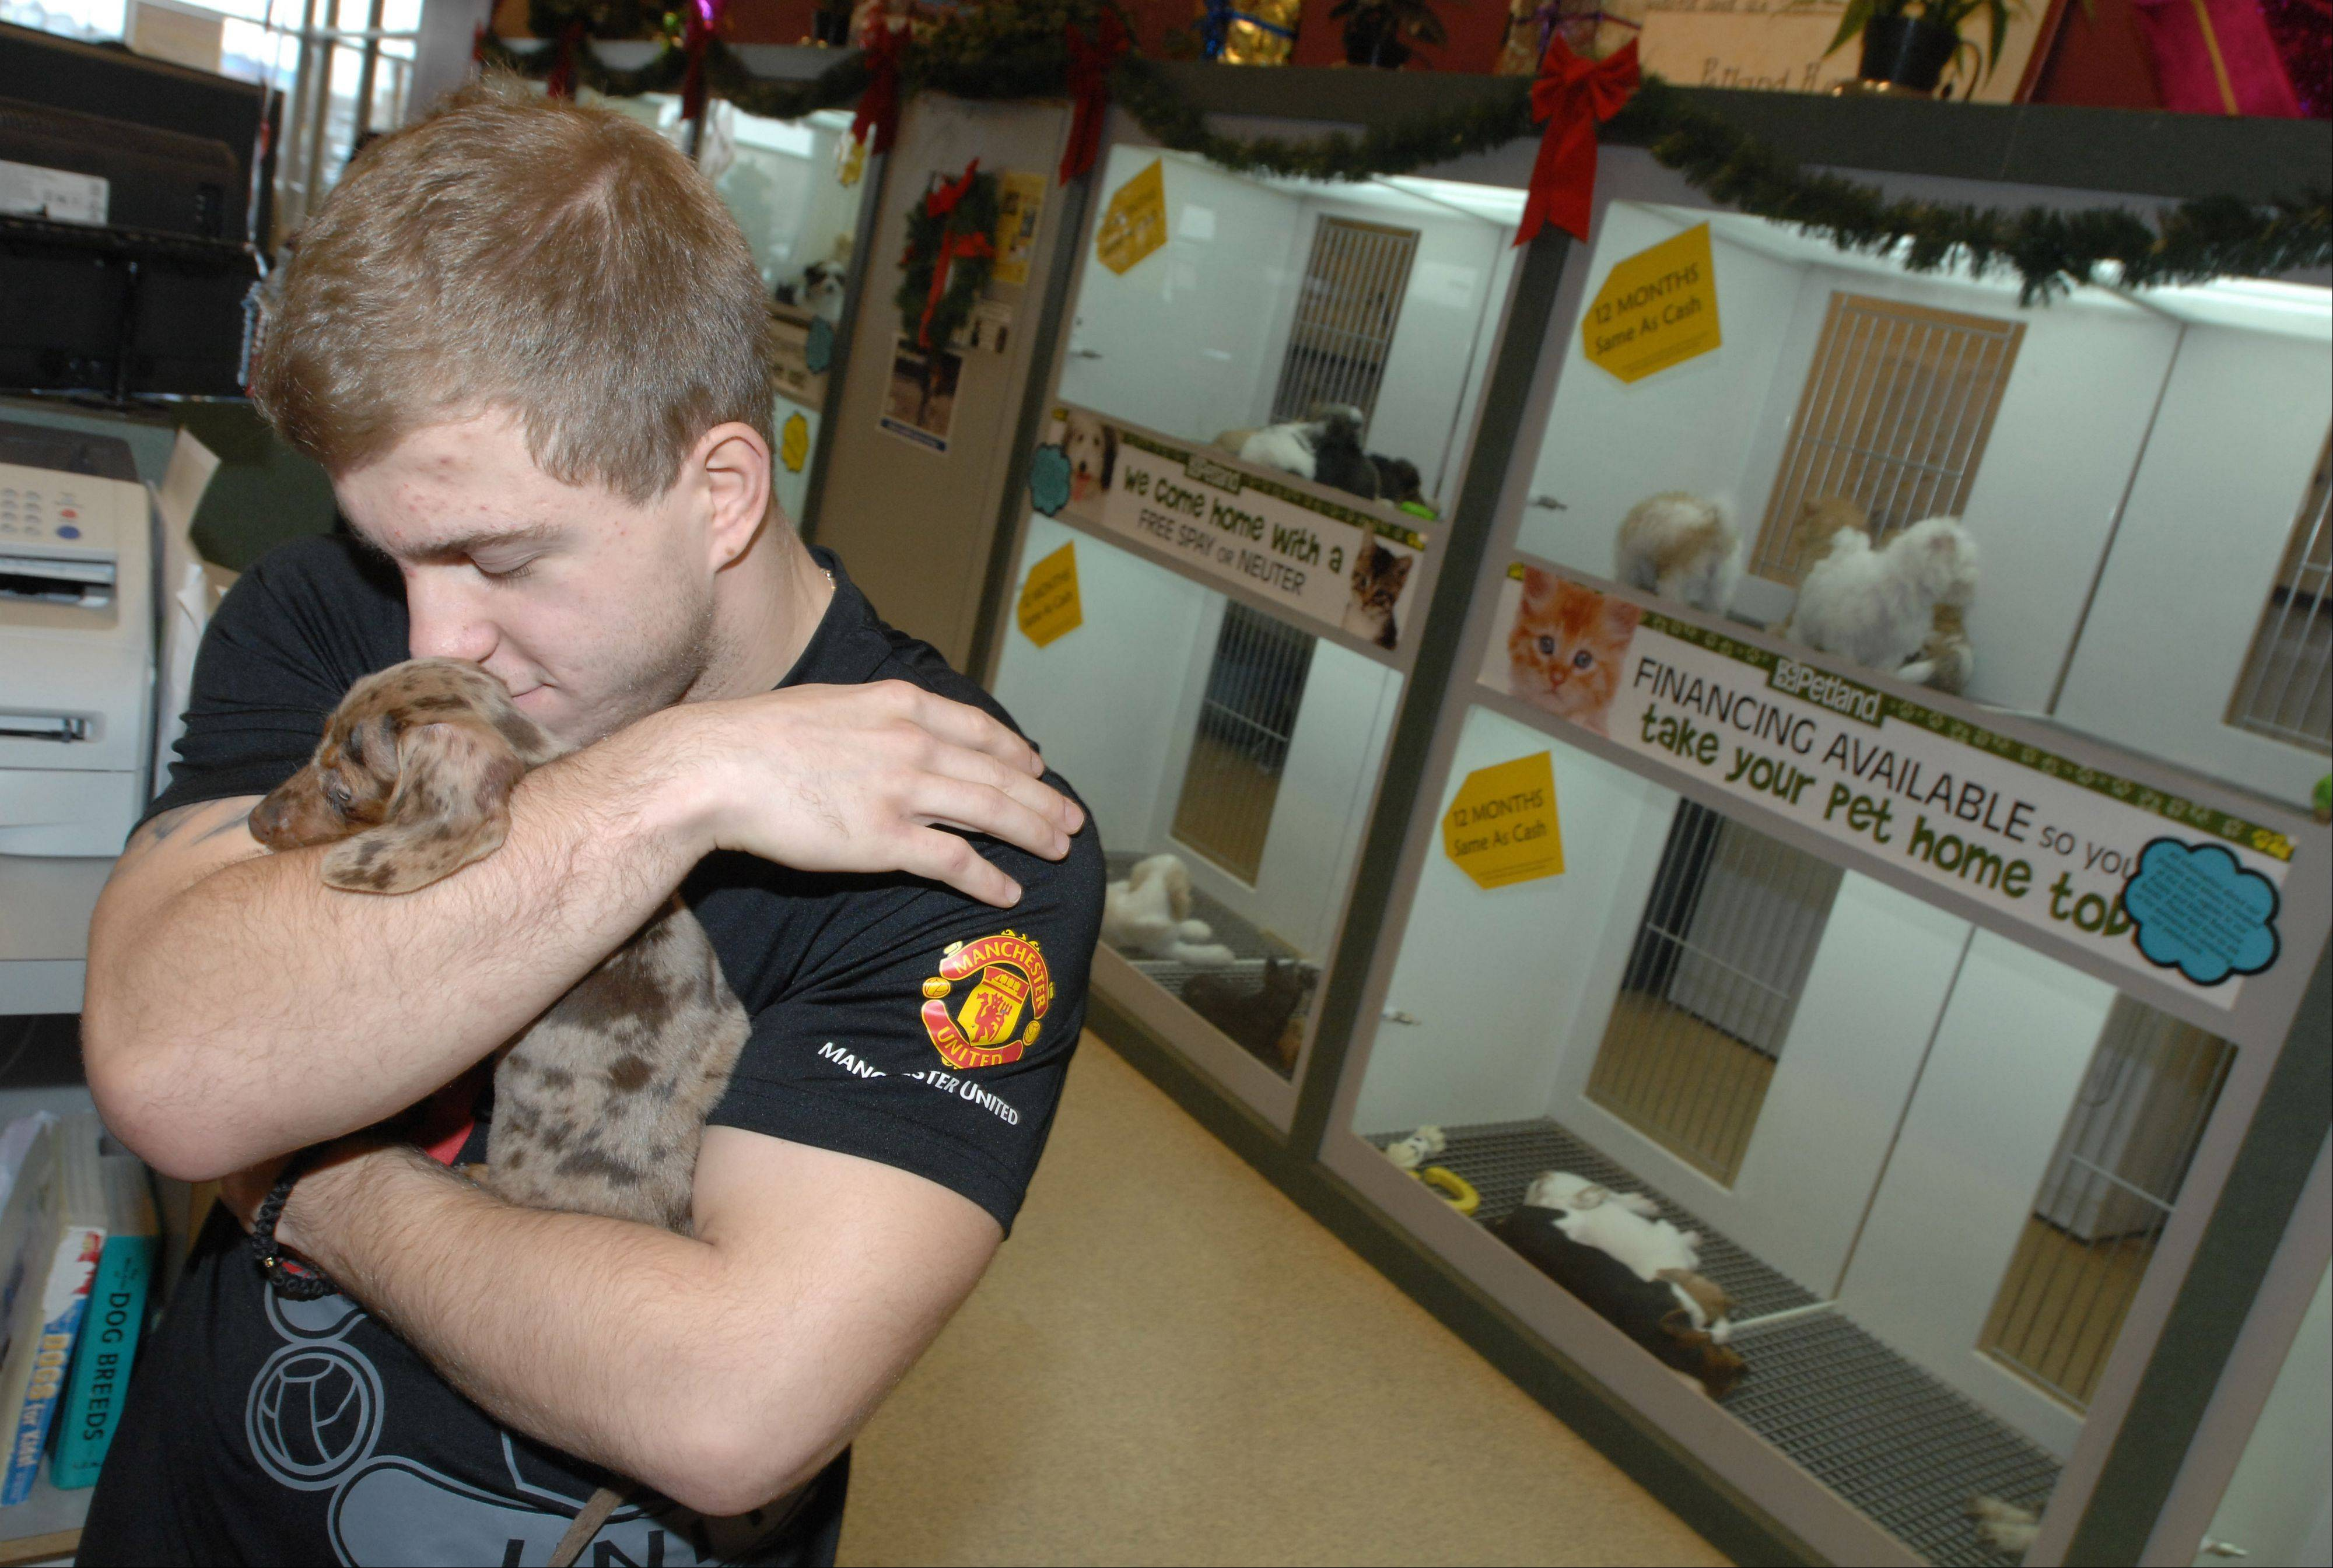 Matt Plackowski hugs a dappled dachshund, which was given to him by Petland Naperville to replace his dog killed in a horrific knife attack.